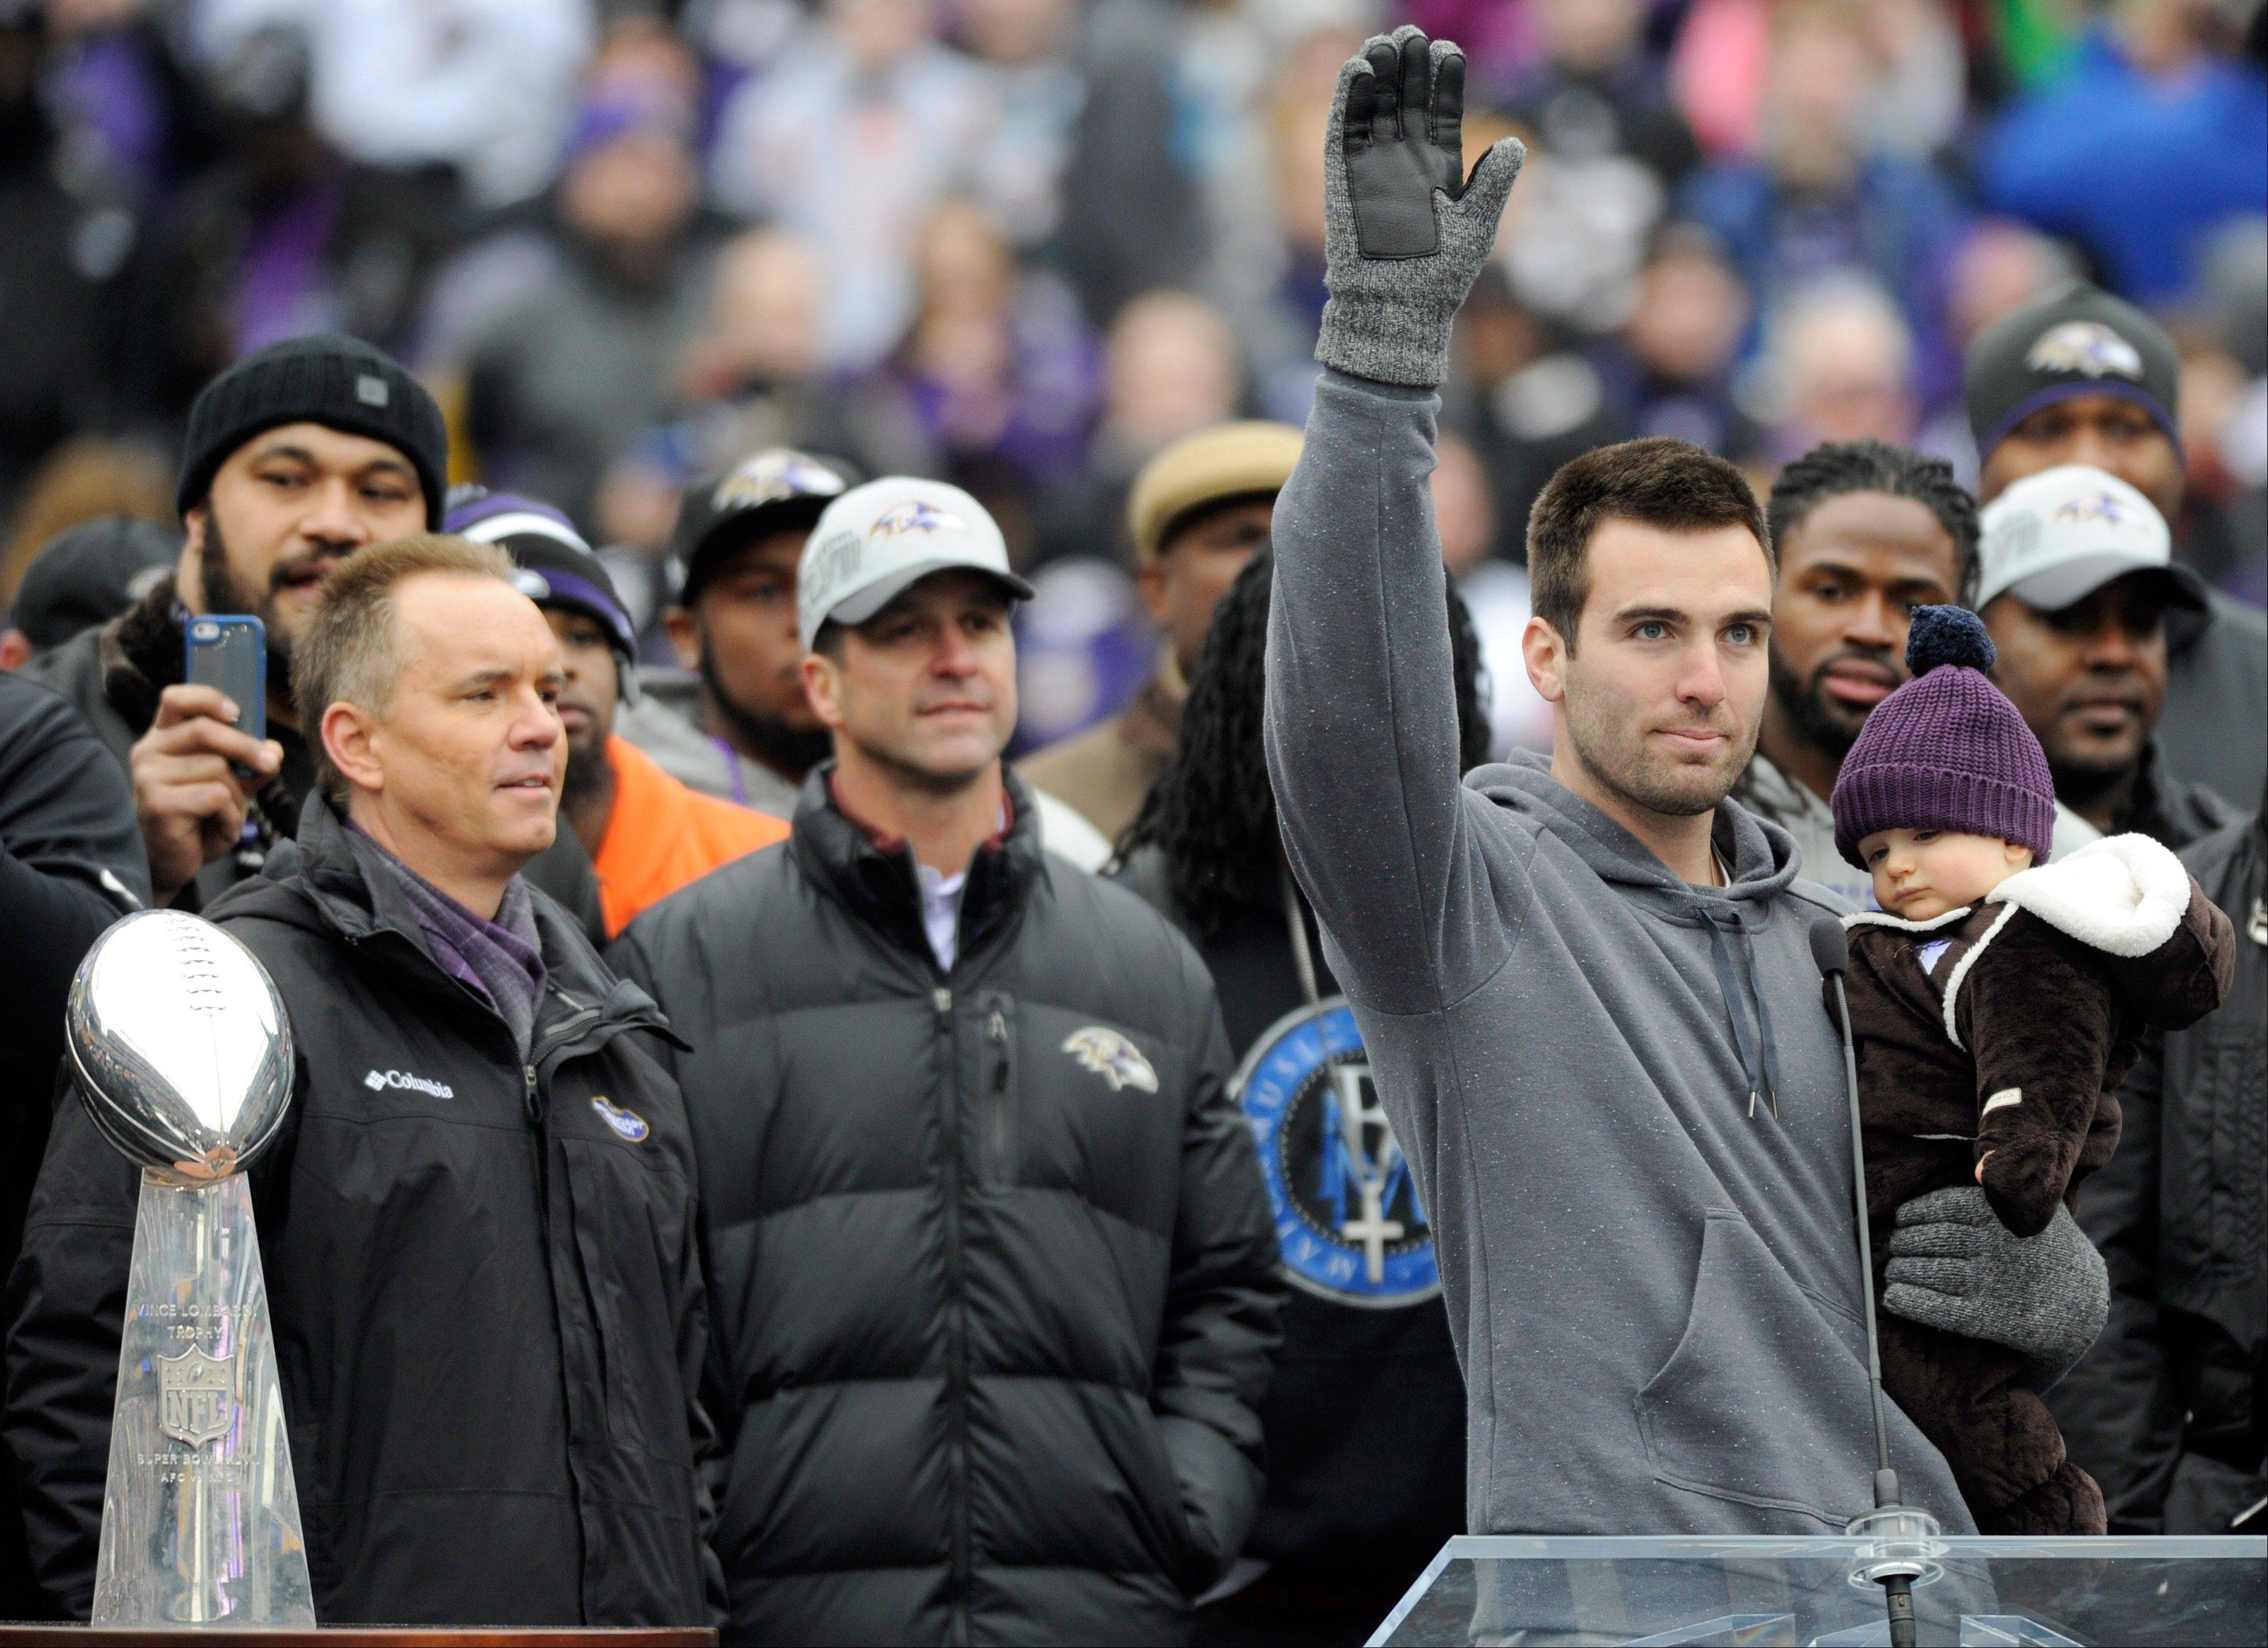 Baltimore Ravens quarterback Joe Flacco, holding his son Stephen, waves to fans during a celebration of the NFL football team's Super Bowl championship at M&T Bank Stadium in Baltimore Tuesday, Feb. 5, 2013. The Ravens defeated the San Francisco 49ers 34-31 in Super Bowl XLVII on Sunday.